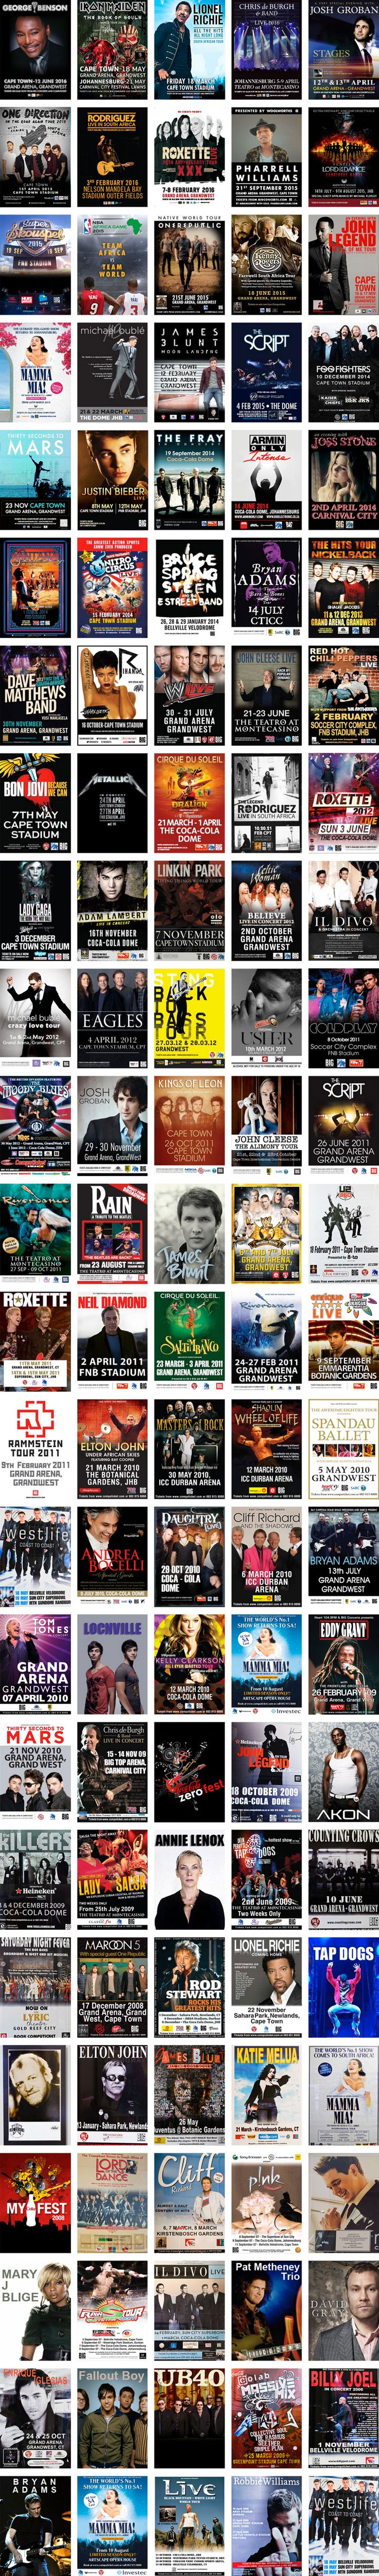 #BigConcerts #Posters